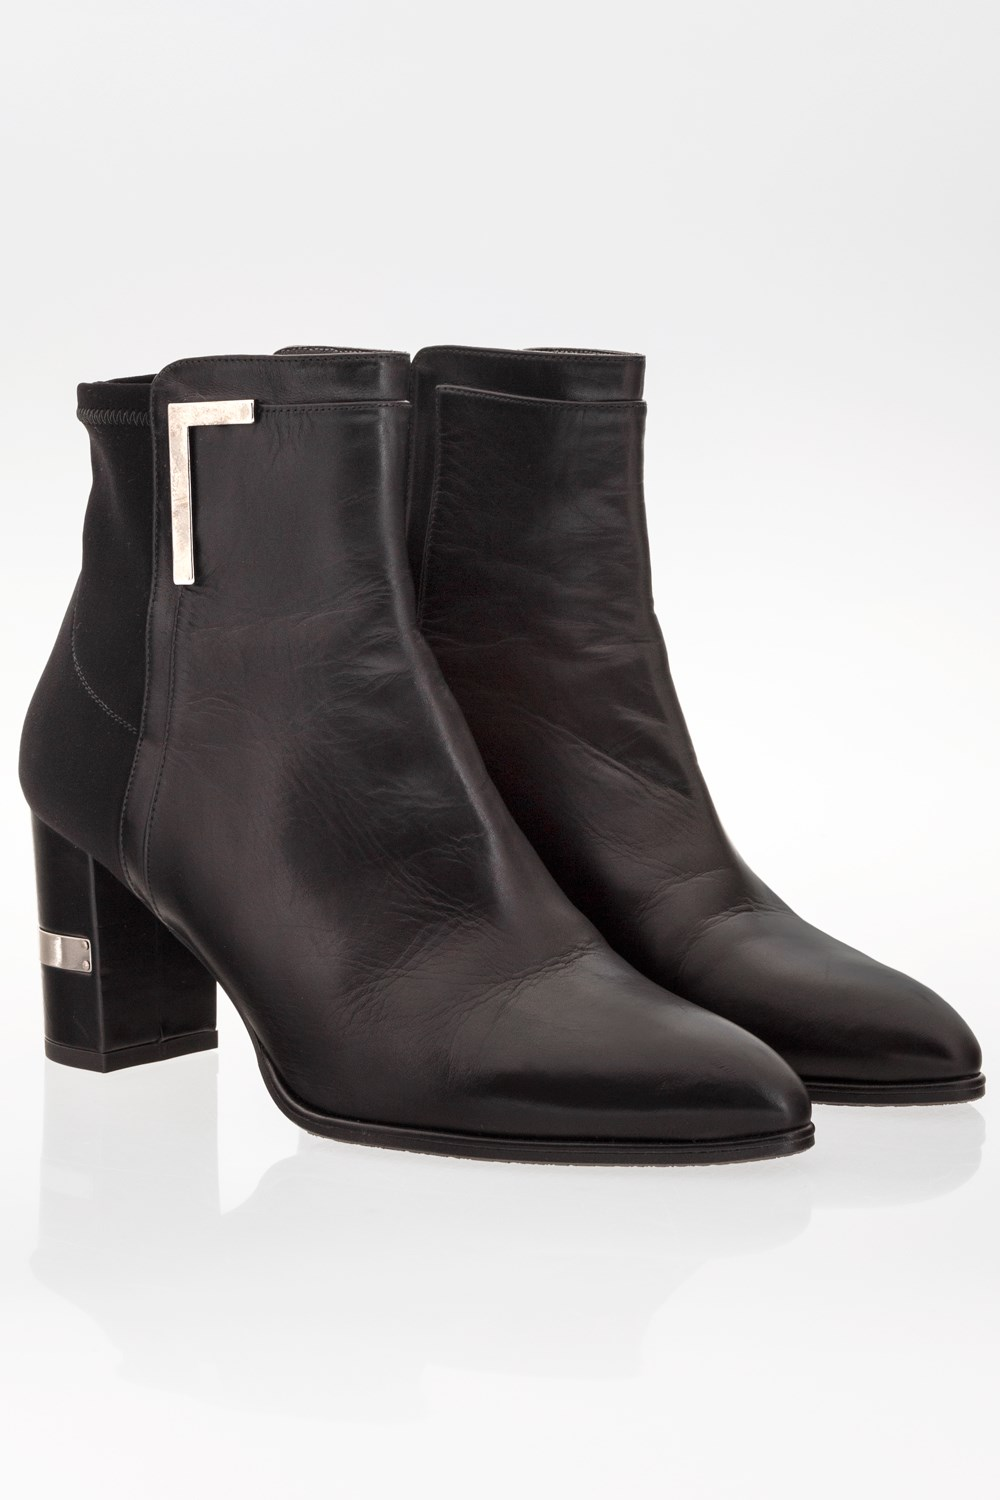 2a5becea Starbags Products, Shoes, Boots, Ankle boots, Black Leather Pointed Ankle  Boots / Size: 38.5 - Fit: 39 (Loose), Starbags.gr